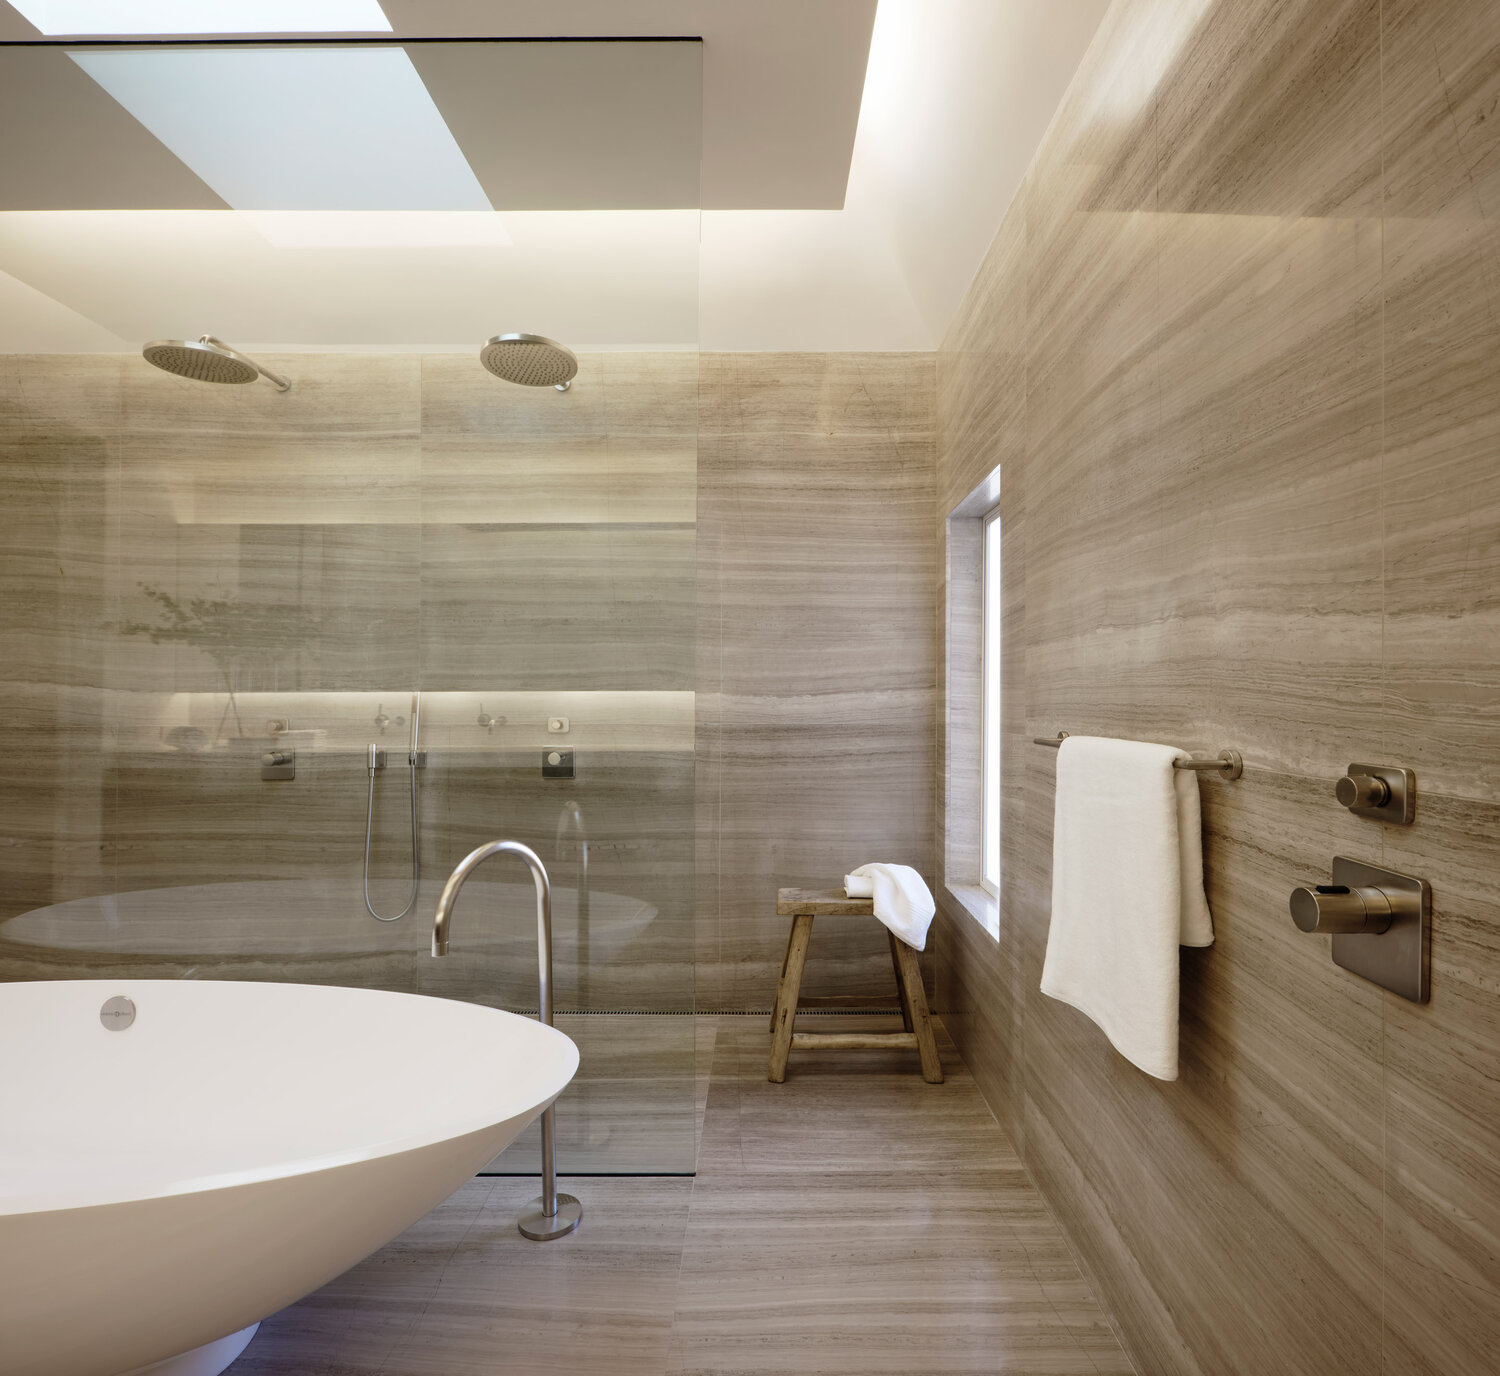 The primary bathroom has dual shower heads, a soaker tub and is skylit from above.